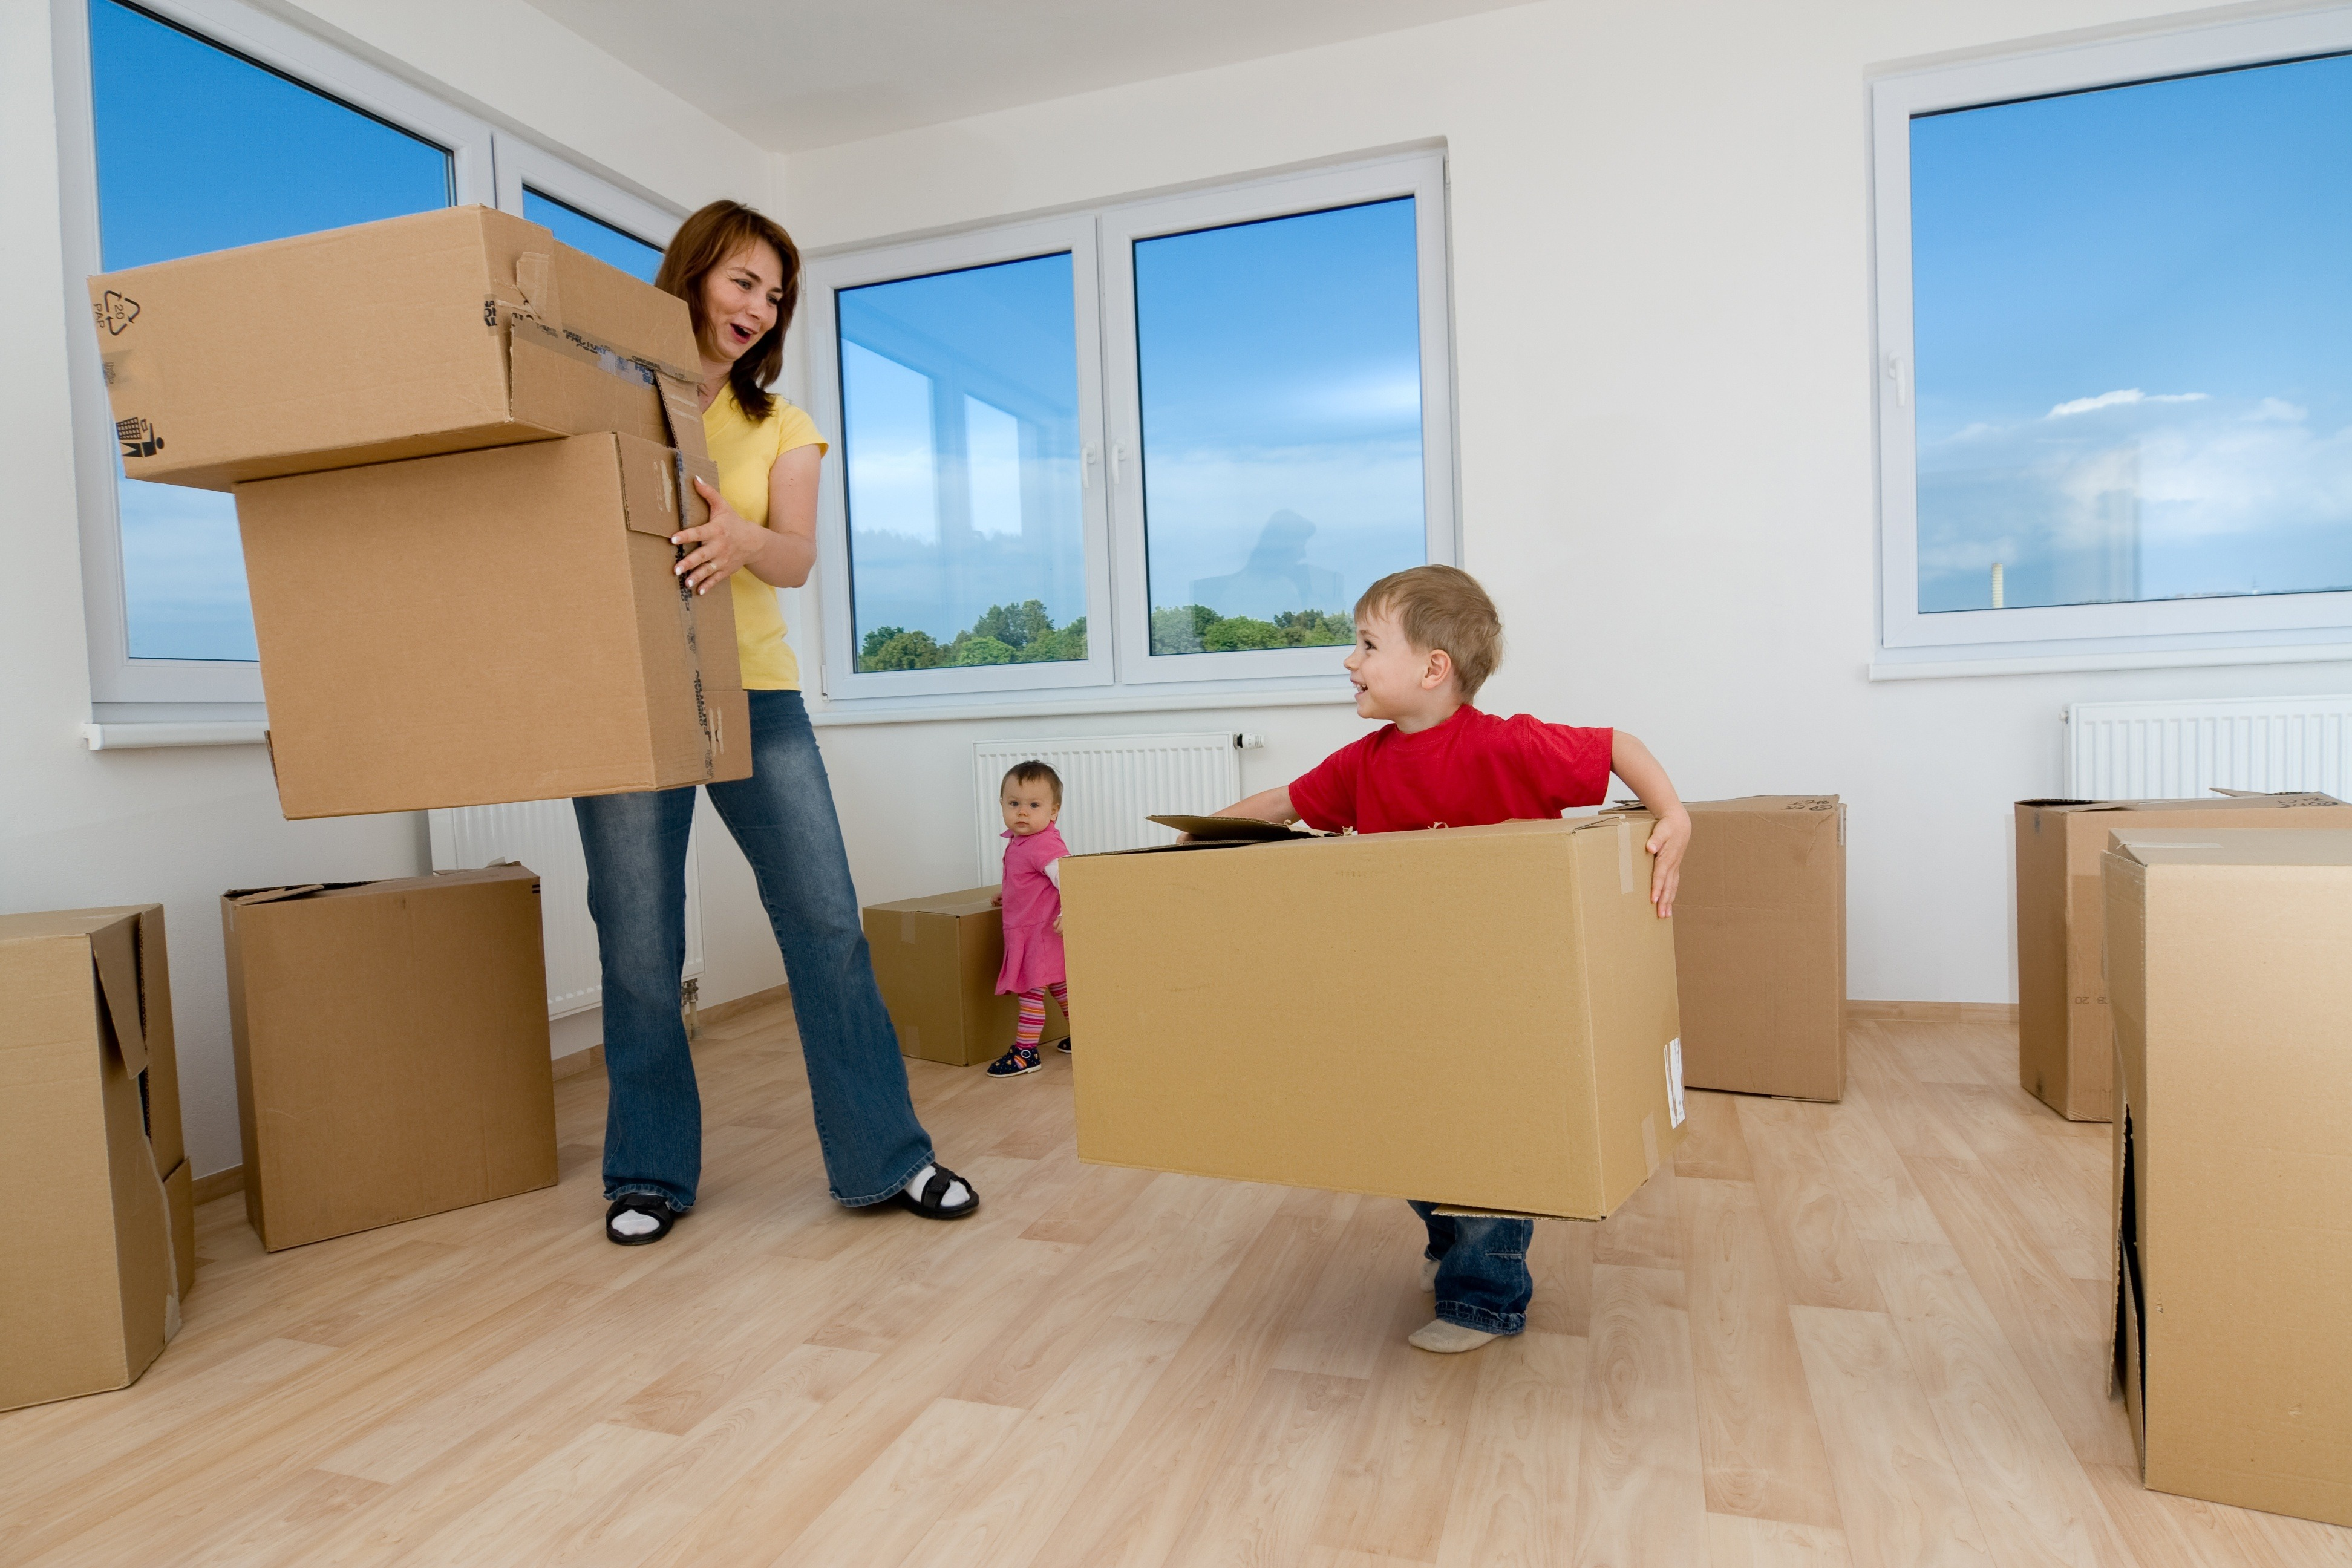 Top 5 tips to choose a self storage facility amberley for Moving to new house